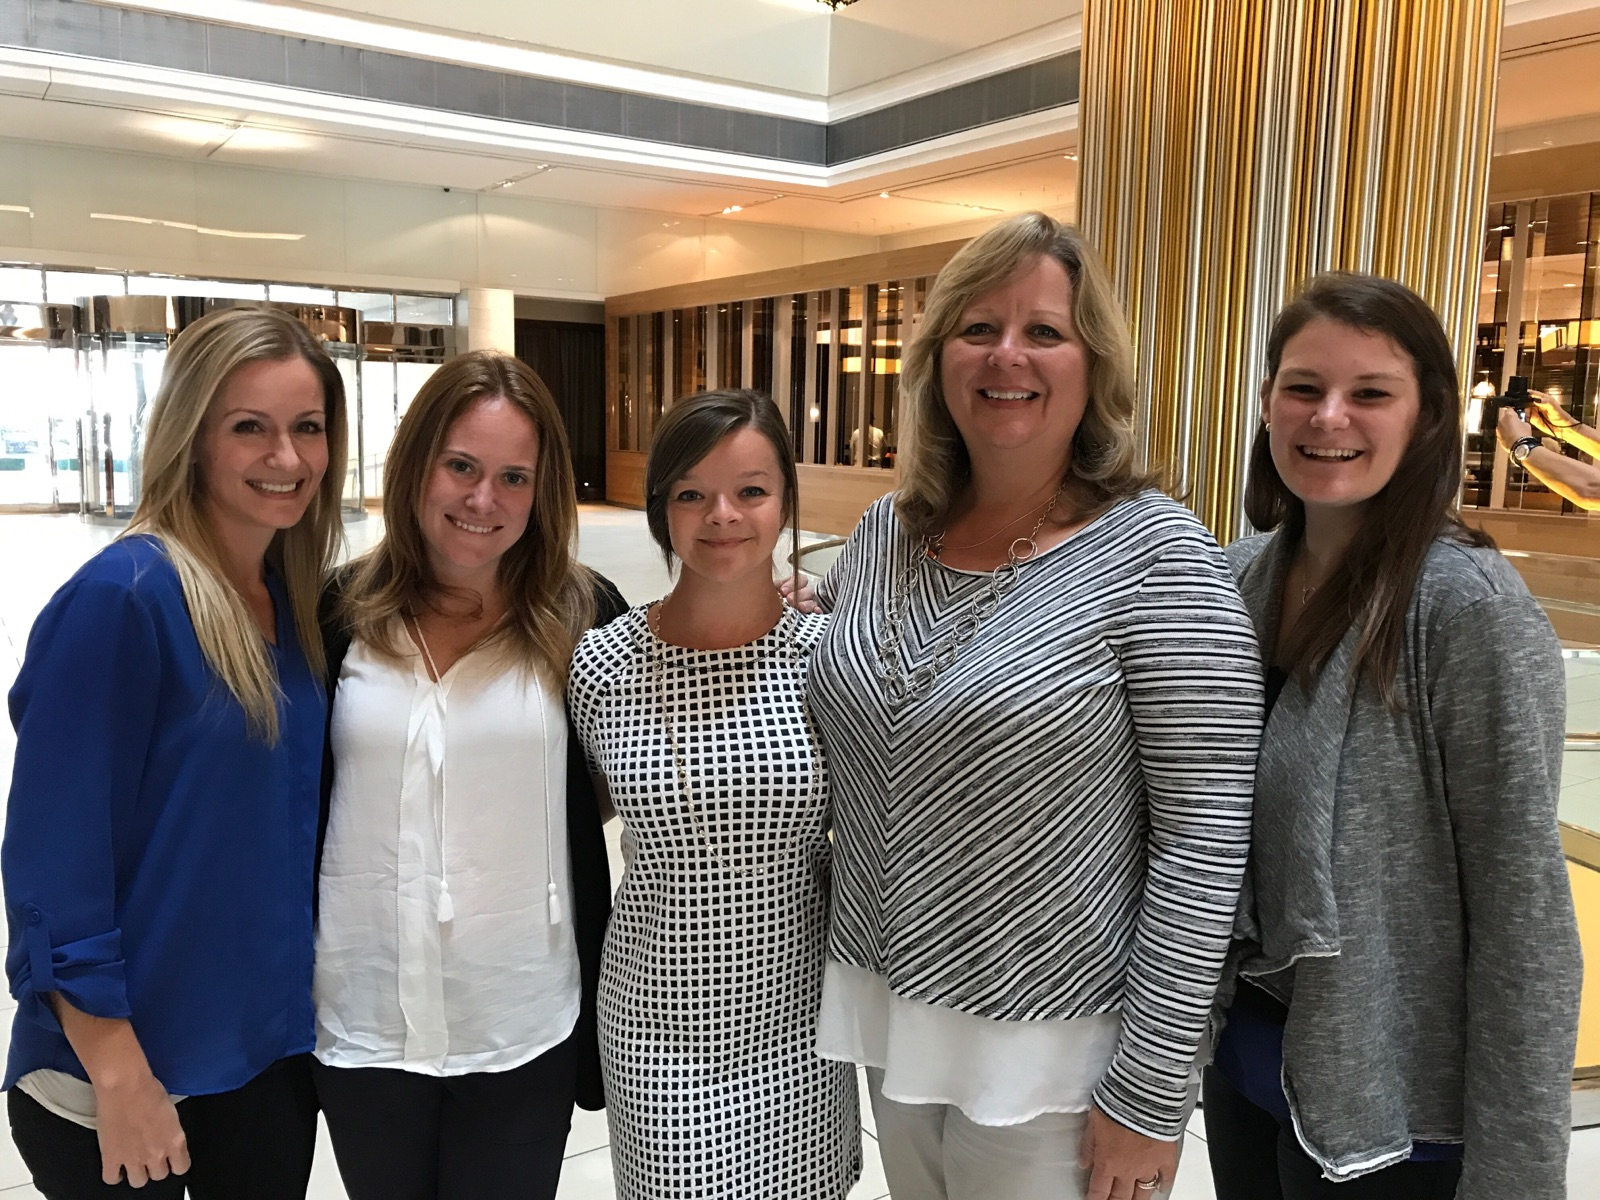 From left to right: Keenan Farrar, Anna Jaffee, Natalie Spindle, Kim Vermillion, and Francie Lefkowitz at NCHCMM 2017 in Atlanta, Georgia.